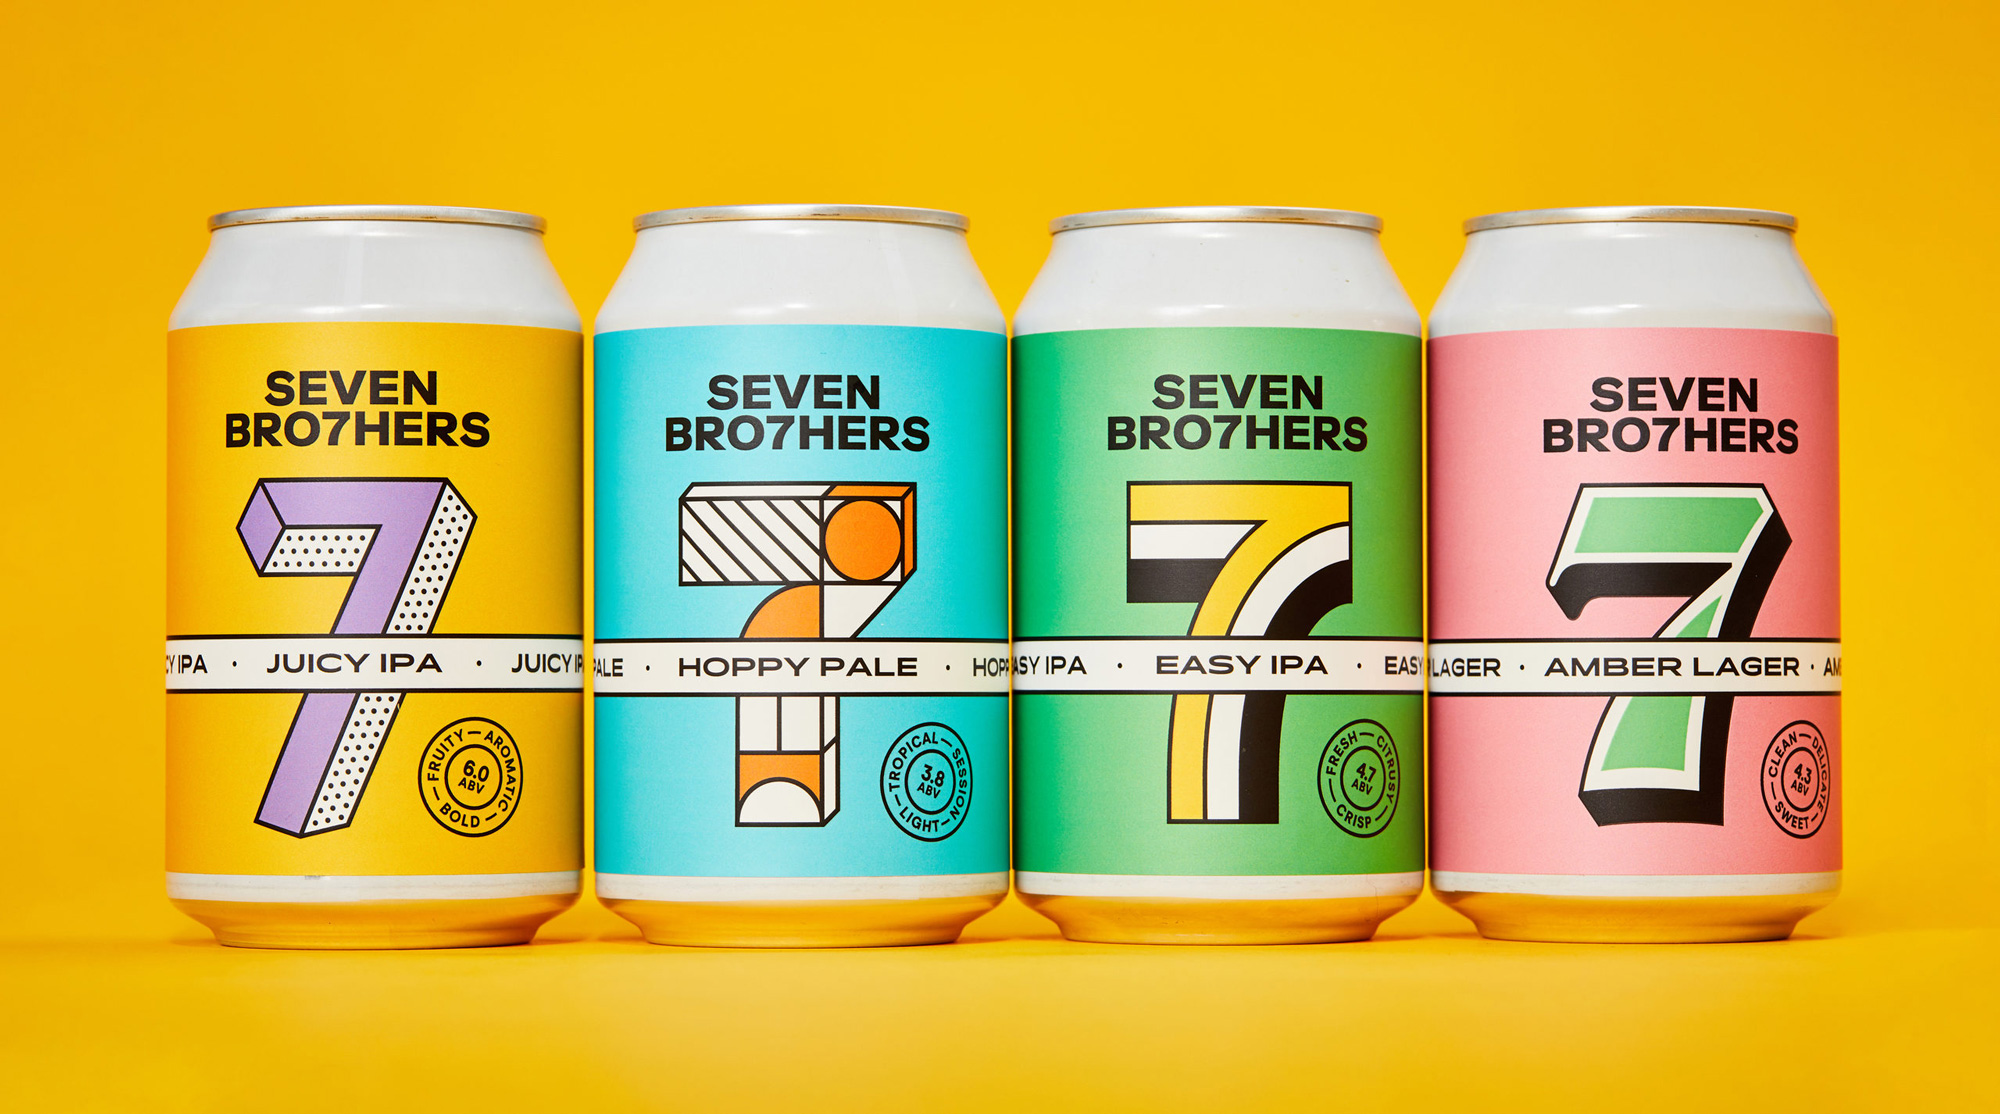 New Logo and Packaging for Seven Bro7hers by Creative Spark